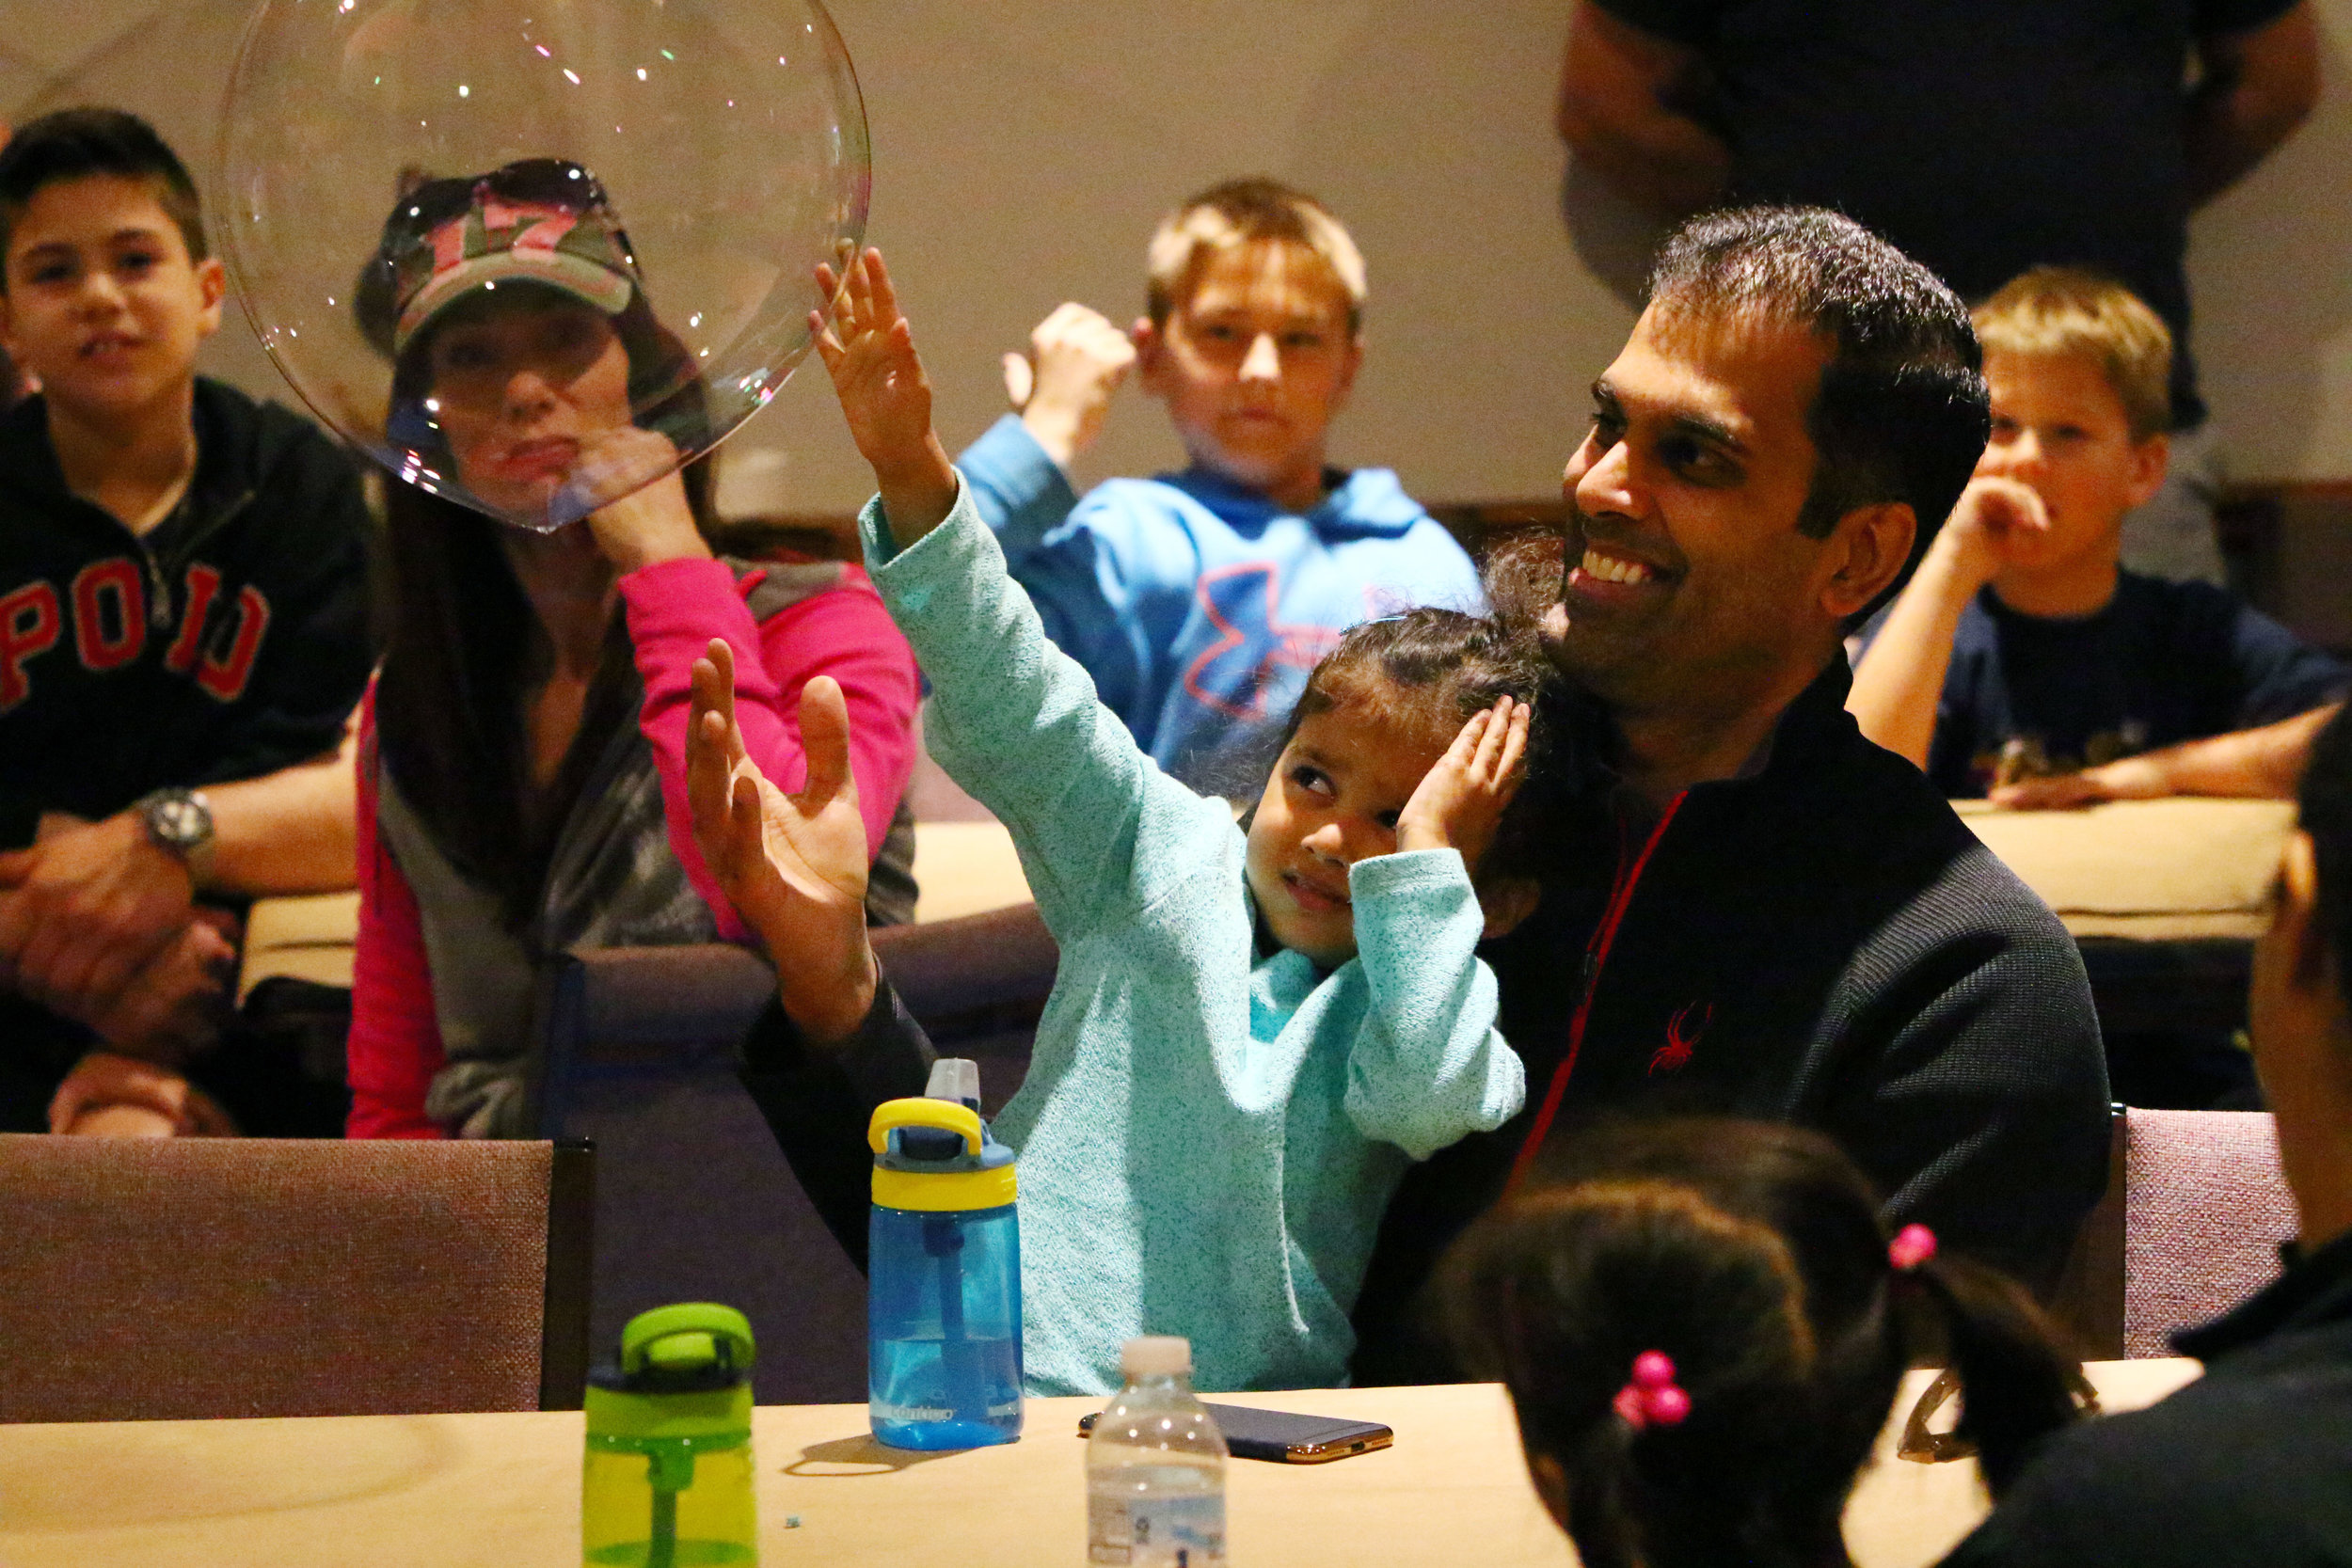 Neel Jain, right, of Chesterton, laughs as his daughter, Sonya, shys away from a bubble floating toward her at the Dunes Learning Center in Chesterton. Families attended a bubble art event led by Mike Bever.